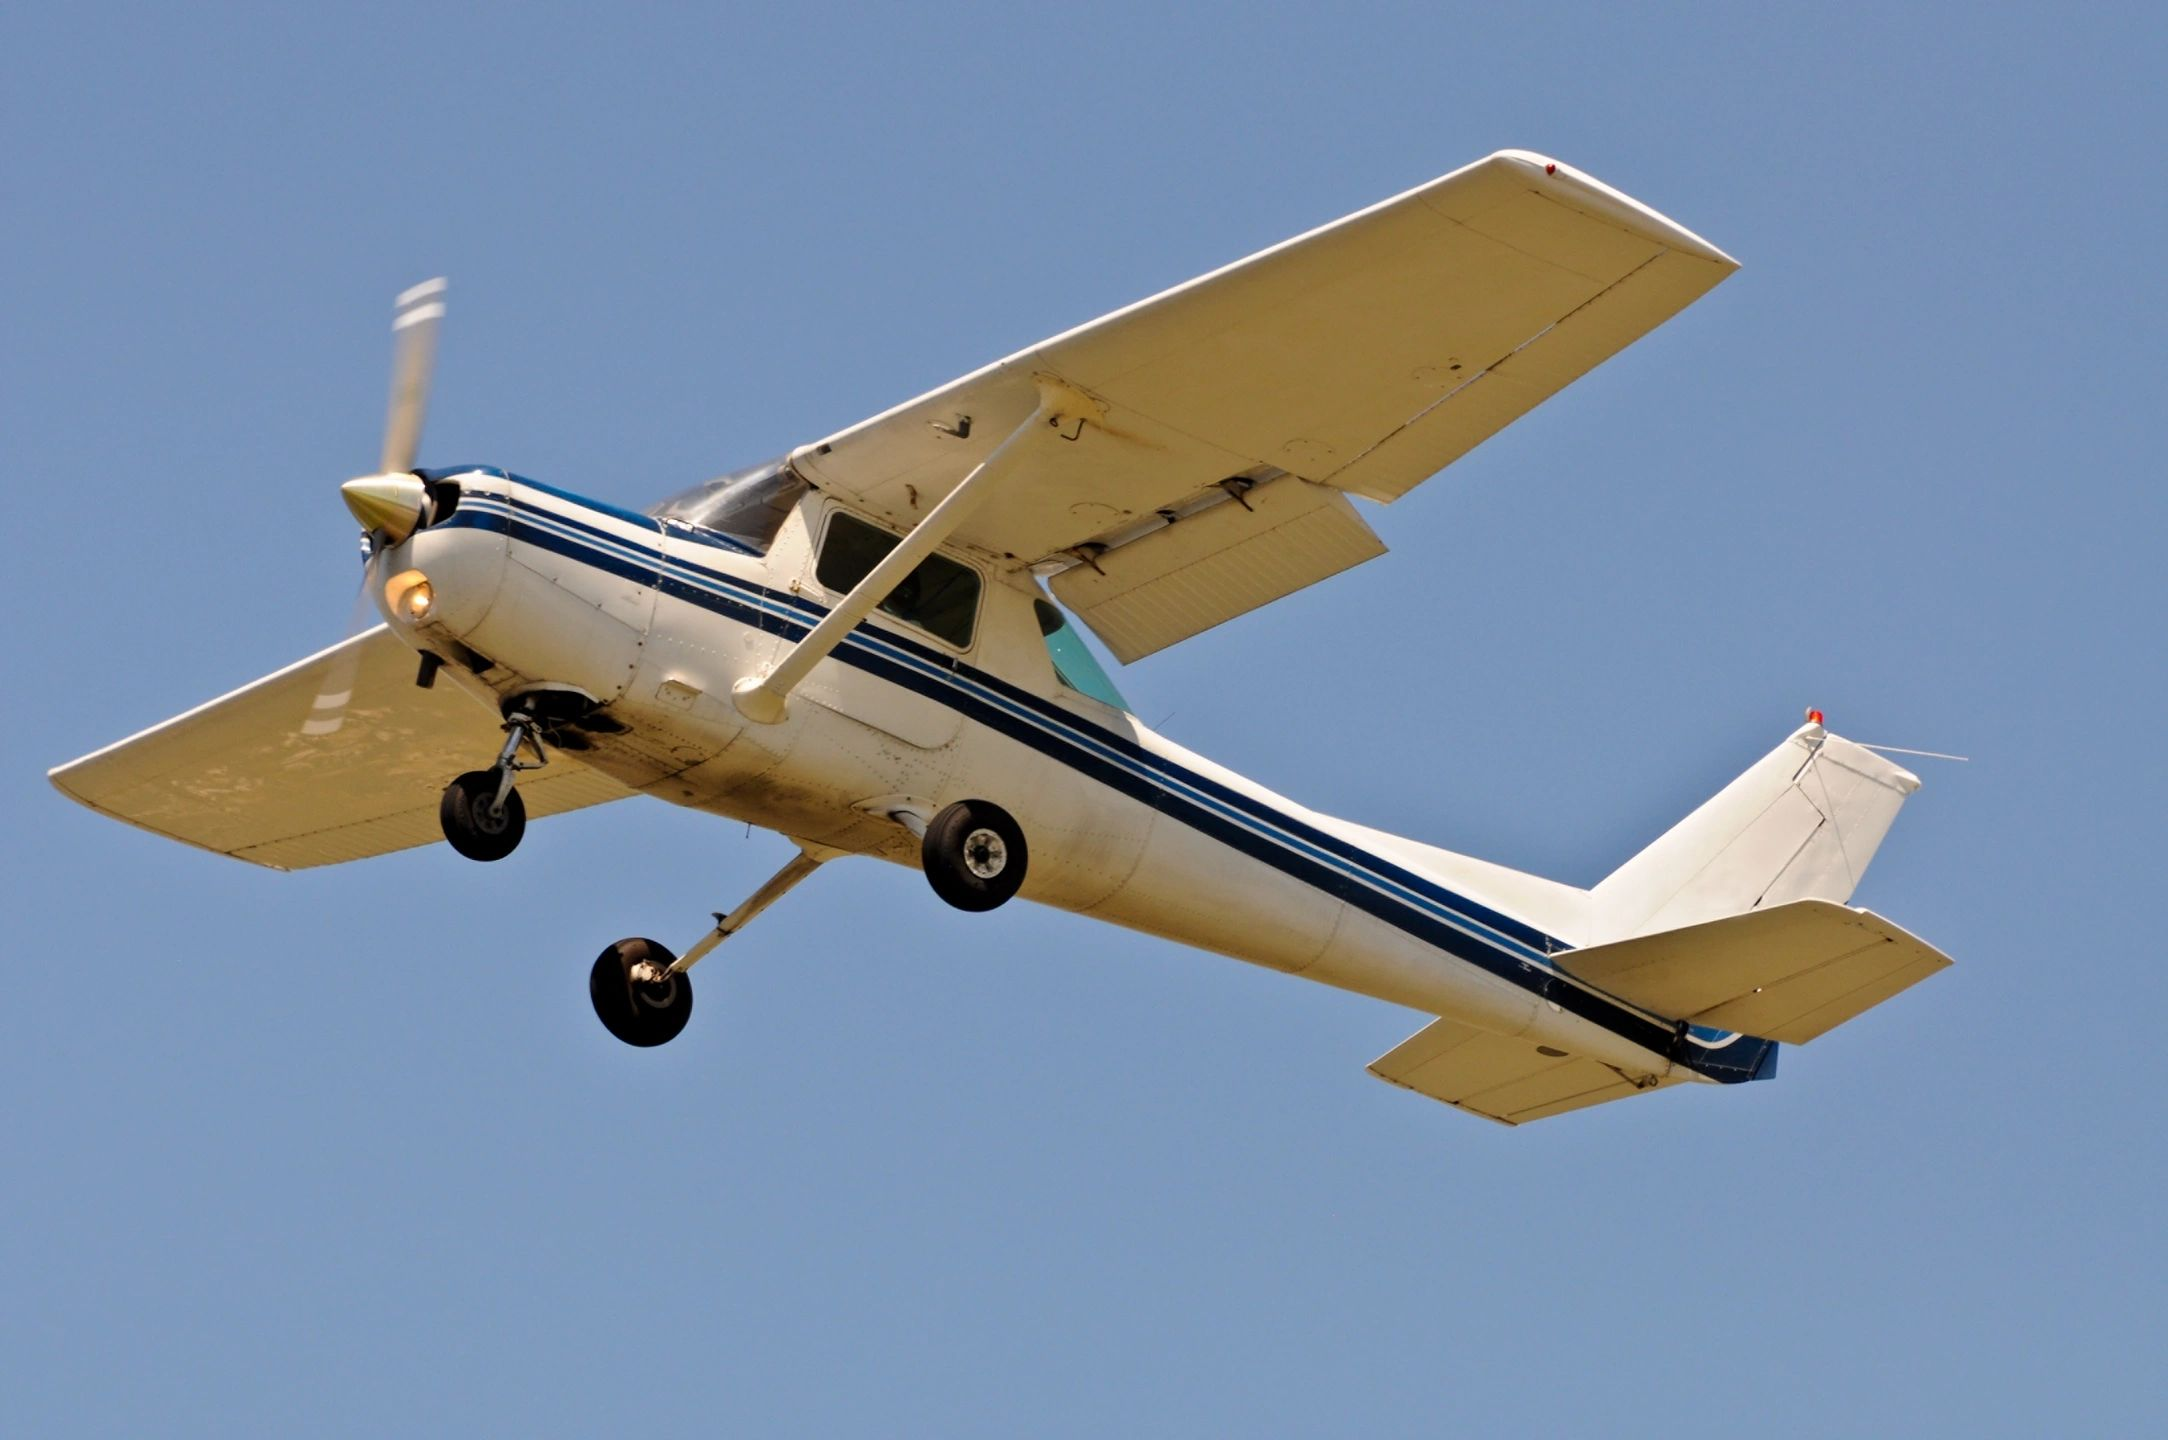 White and Blue Striped Cessna 150 Aircraft